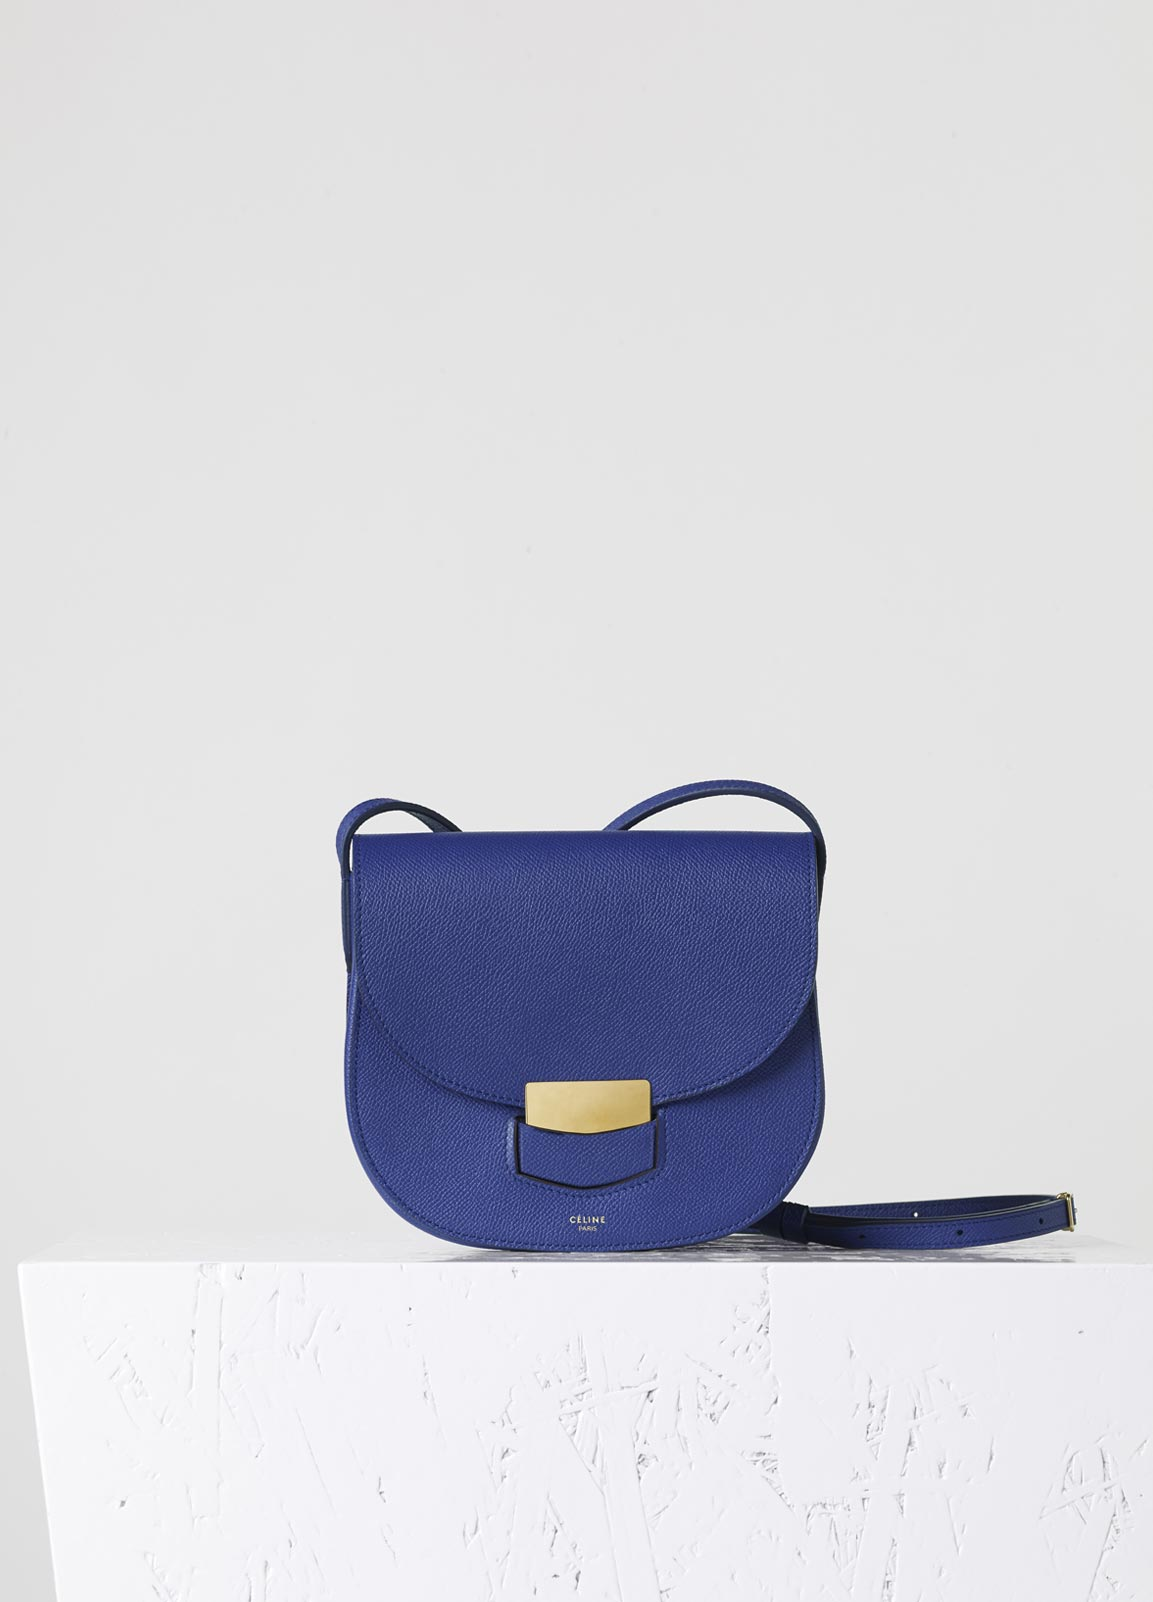 Celine Pre Fall Bag Collection Featuring New Sangle